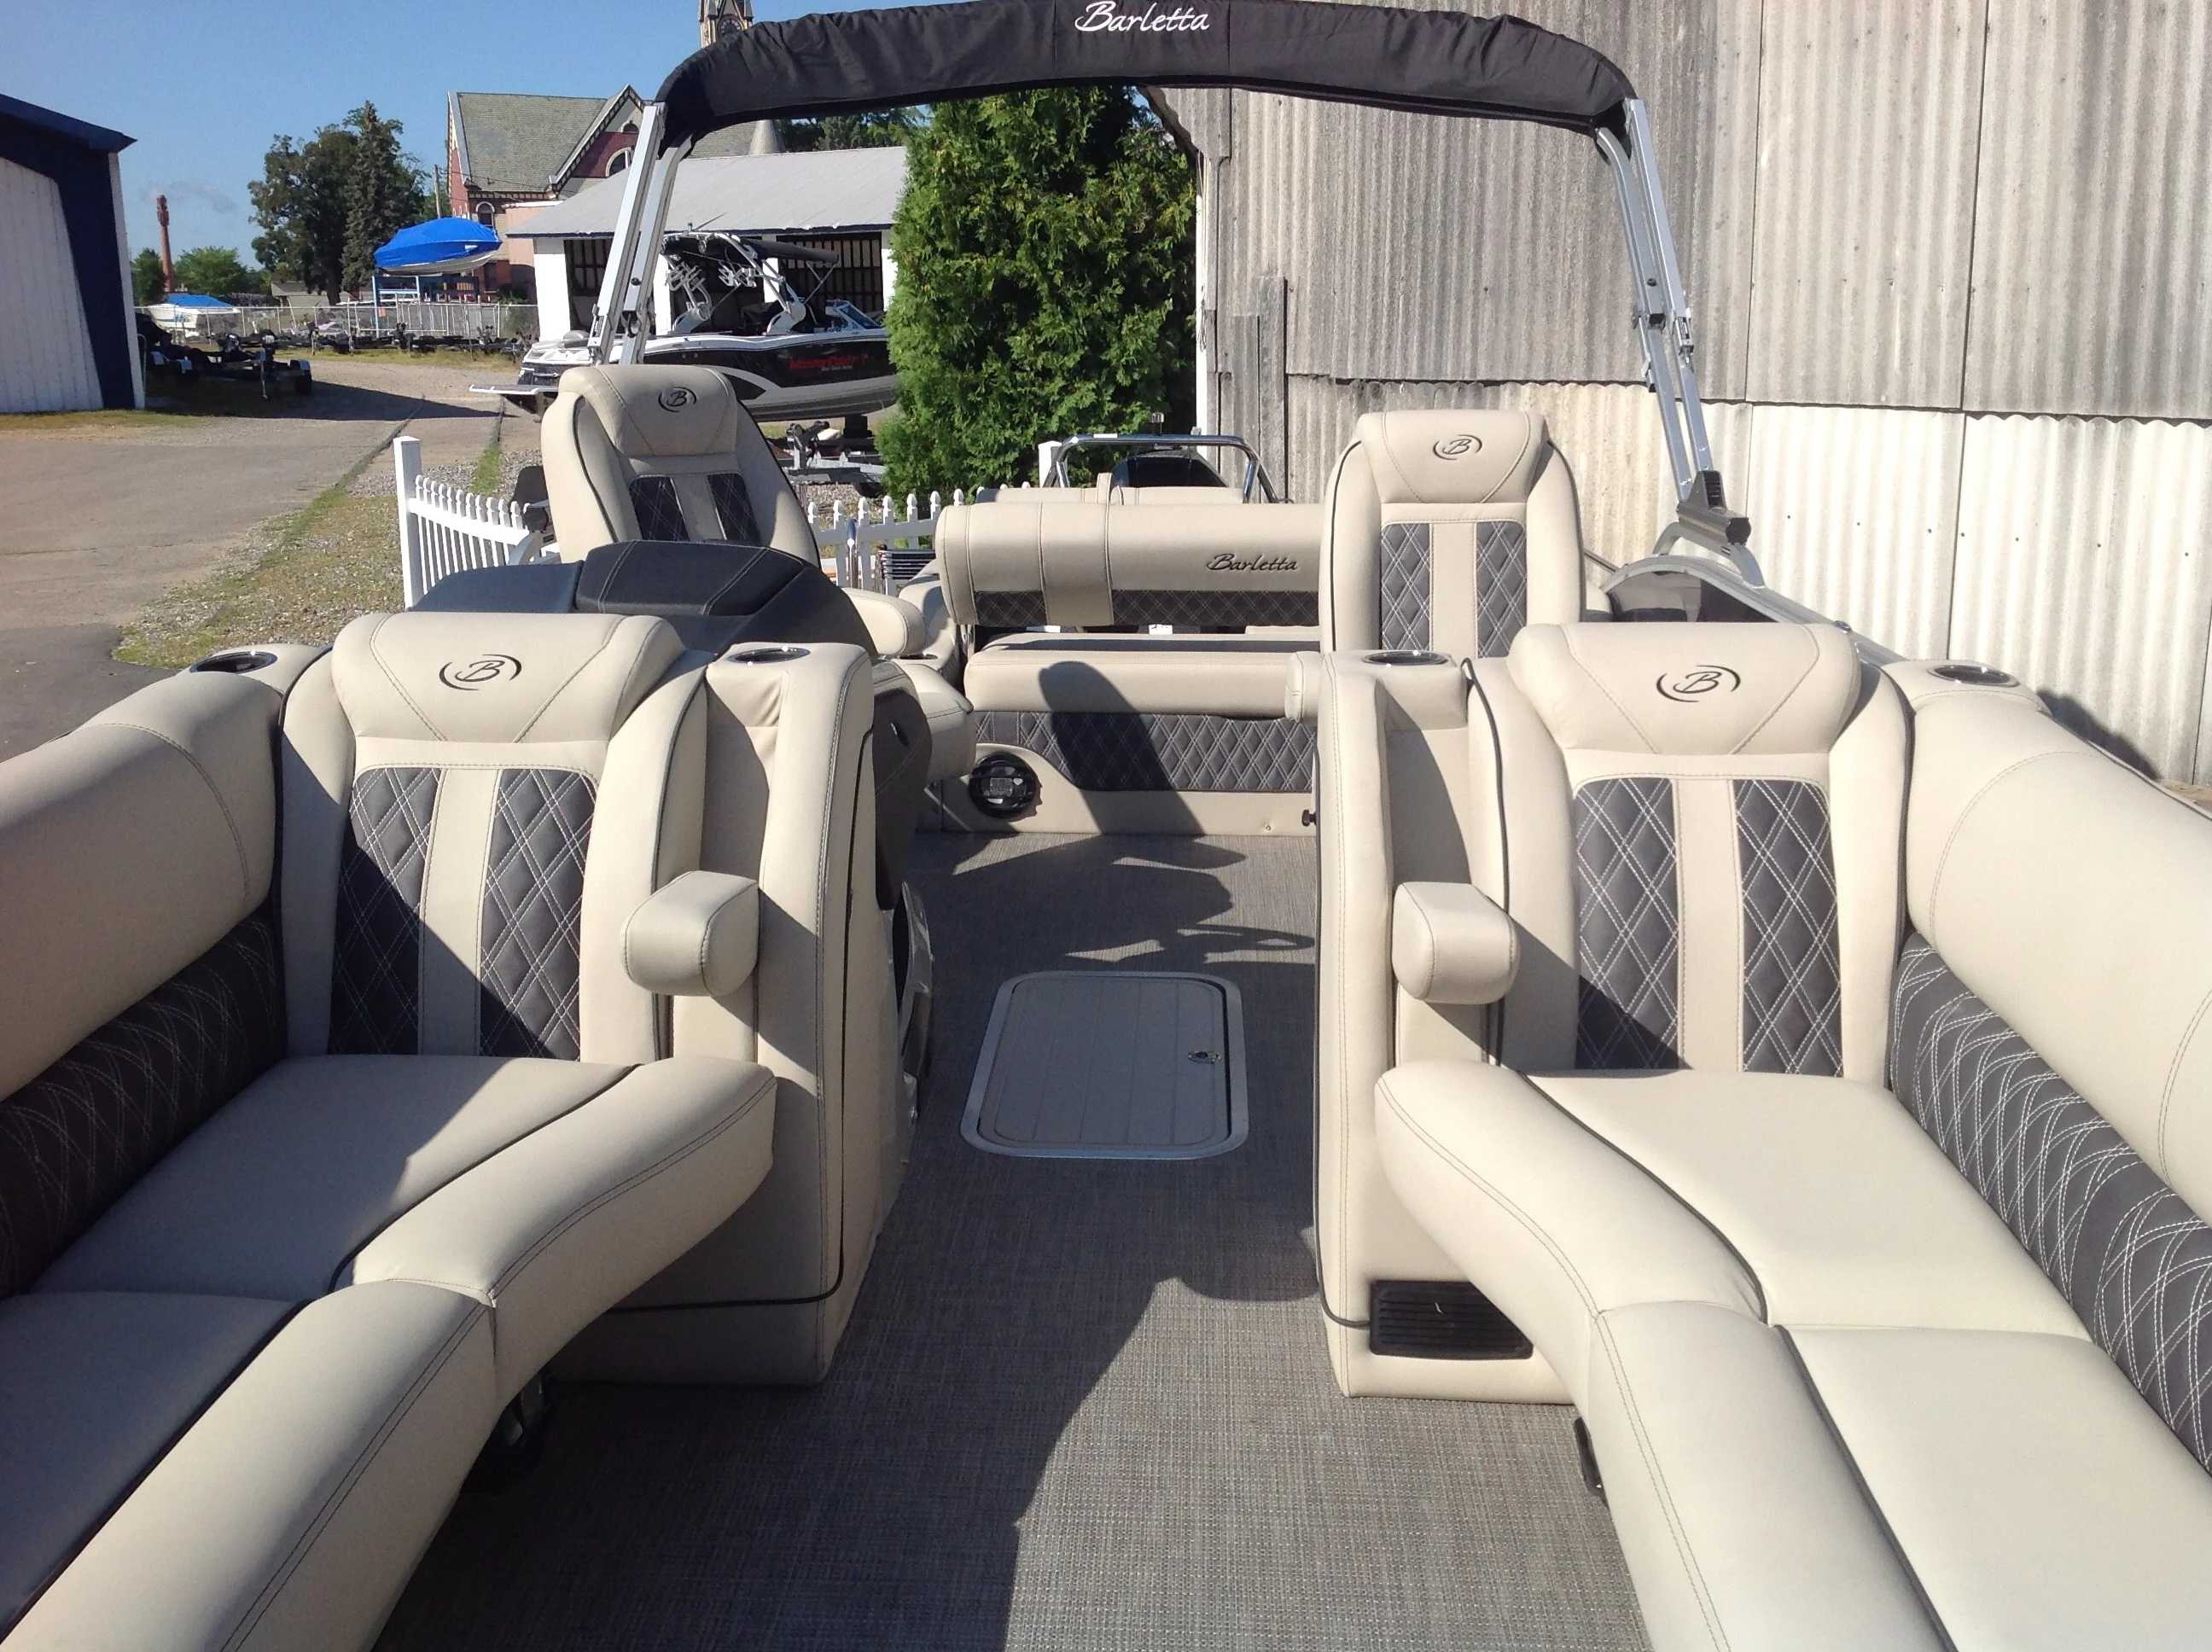 2021 Barletta boat for sale, model of the boat is L25UC & Image # 4 of 17